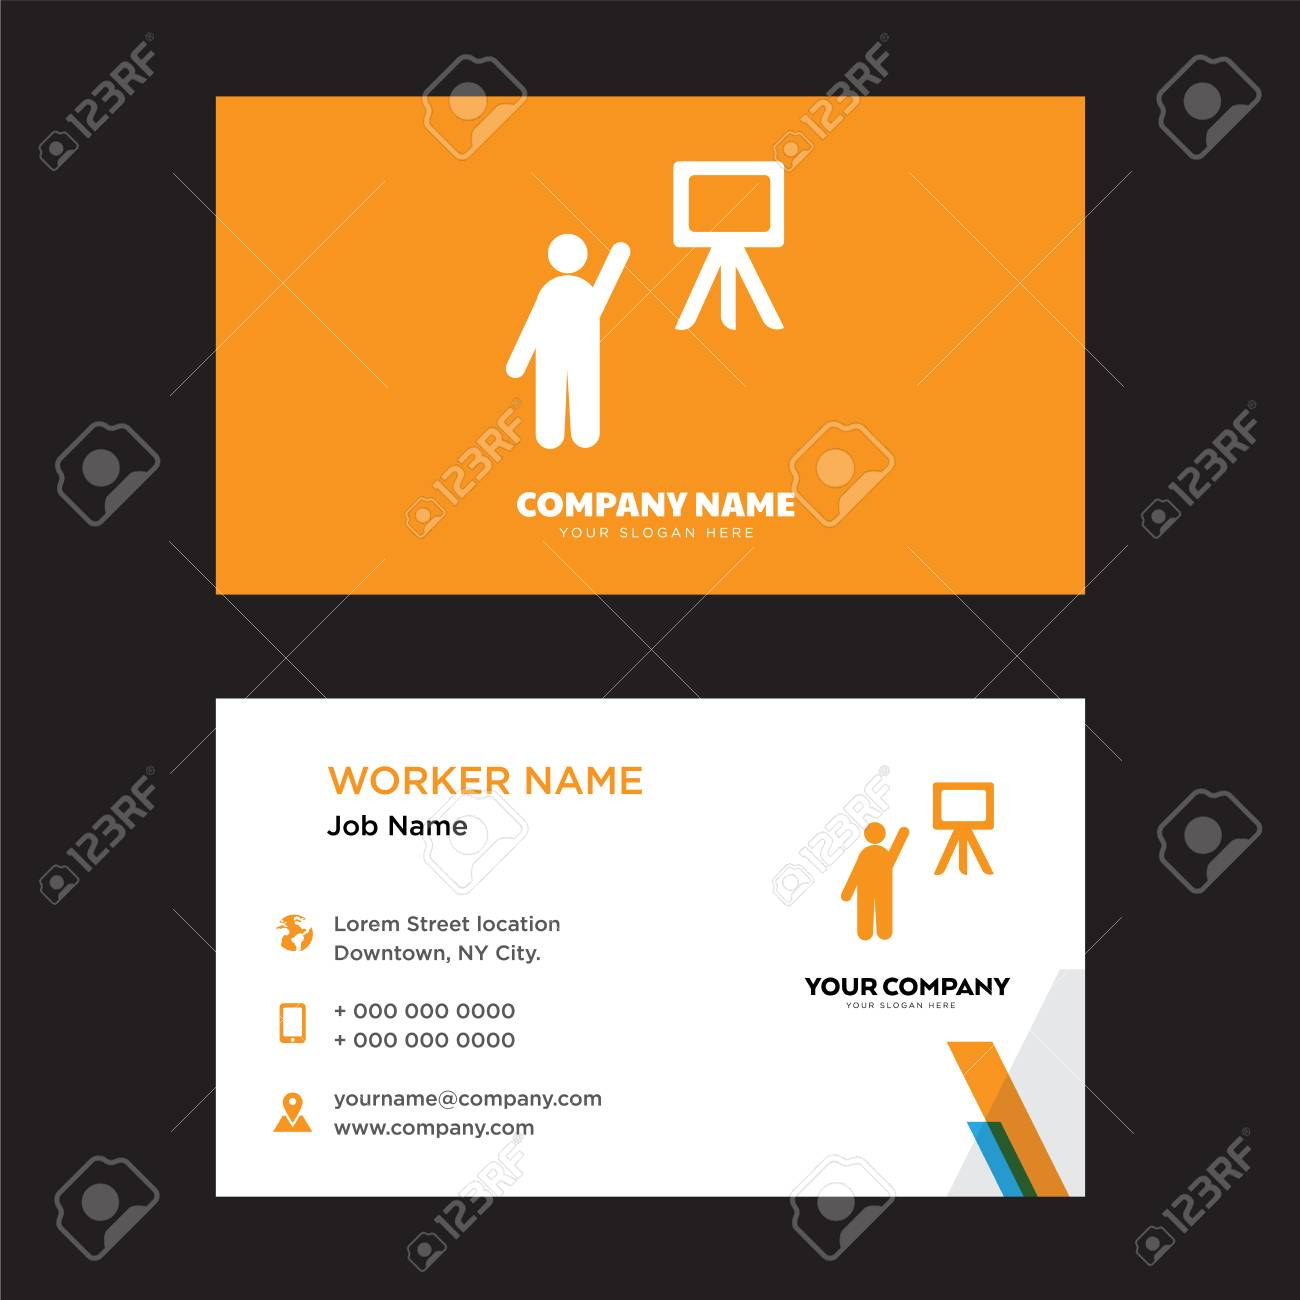 Teacher Business Card Design Template, Visiting For Your Company ...